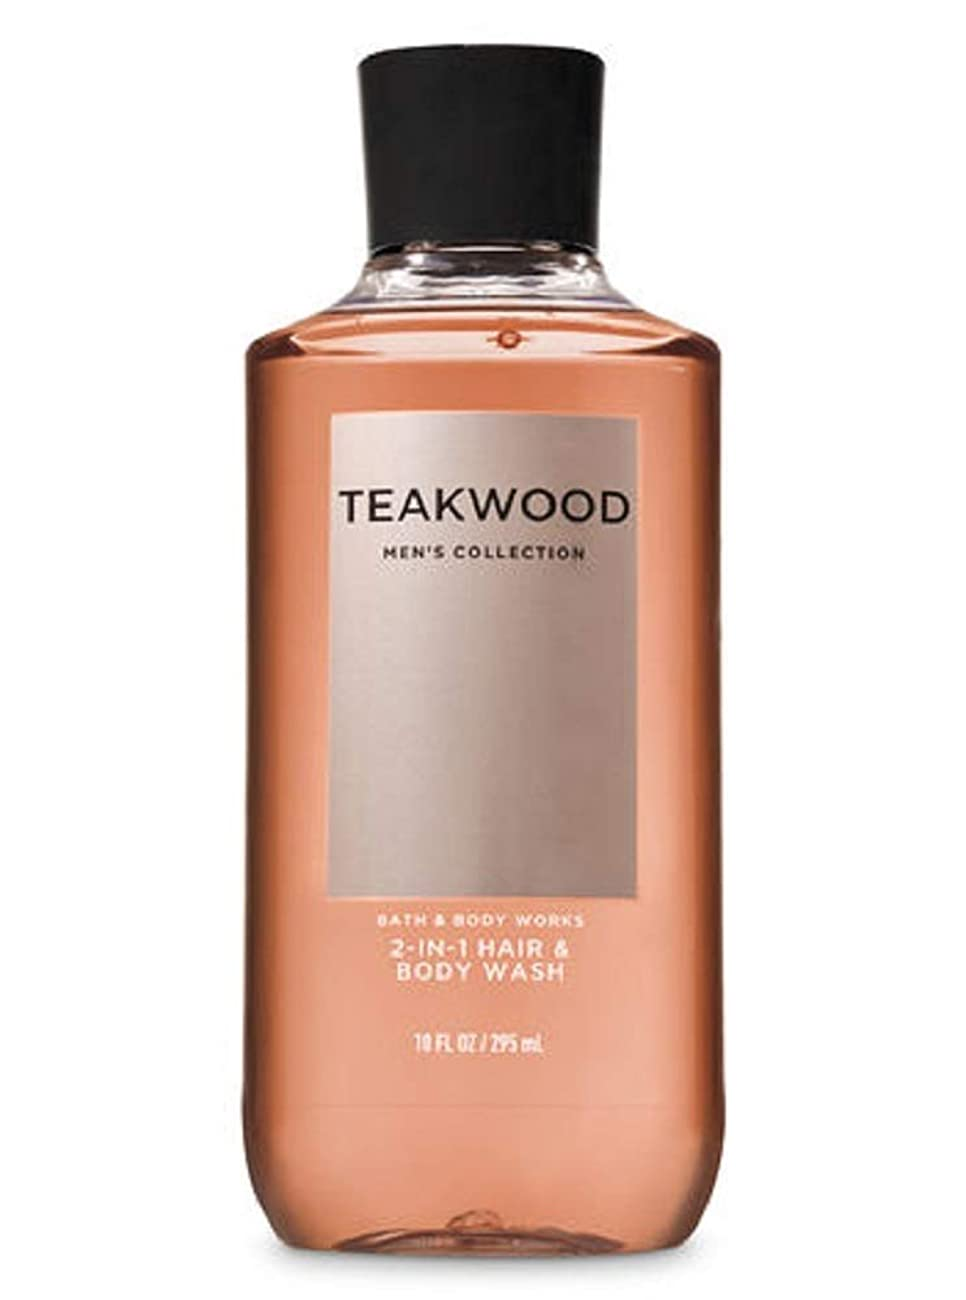 お尻ねじれ日【並行輸入品】Bath & Body Works TEAKWOOD 2-in-1 Hair + Body Wash